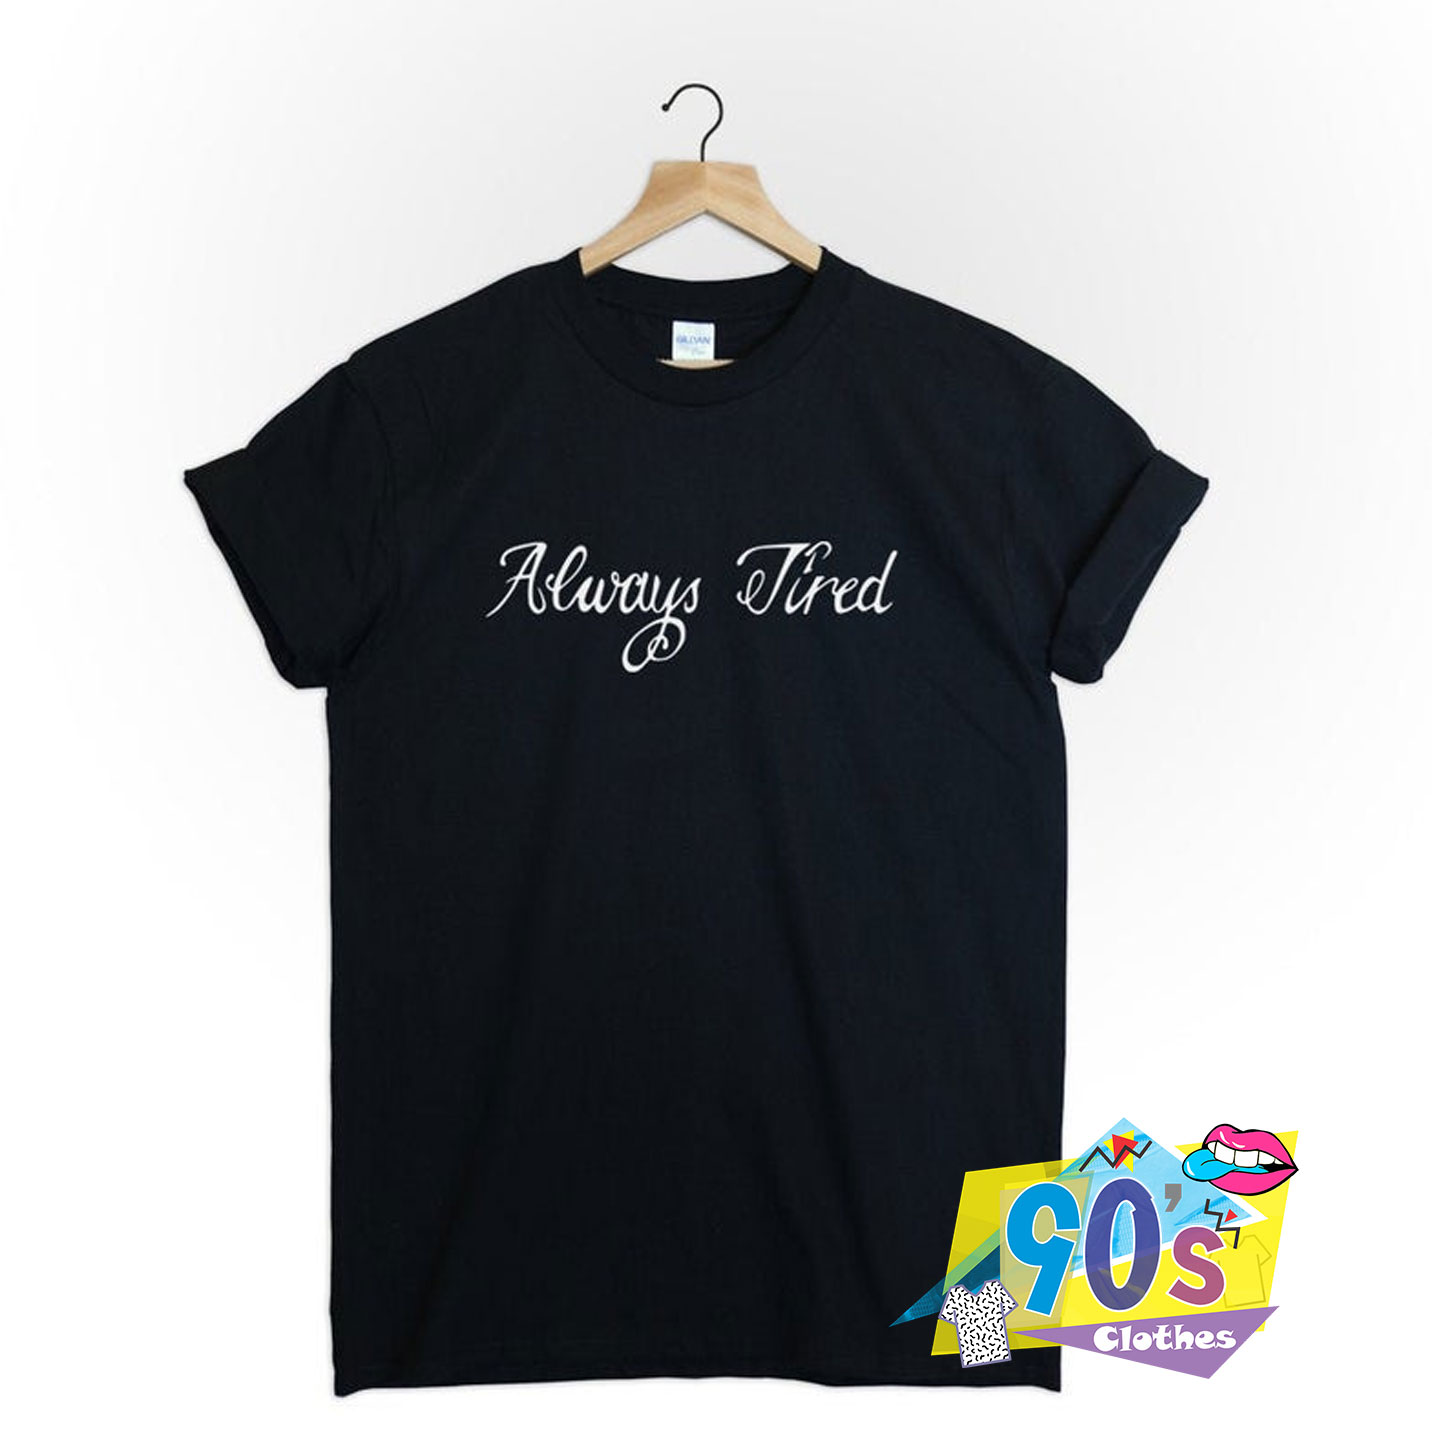 Post Malone Cute: Post Malone Always Tired Cute Graphic T Shirt